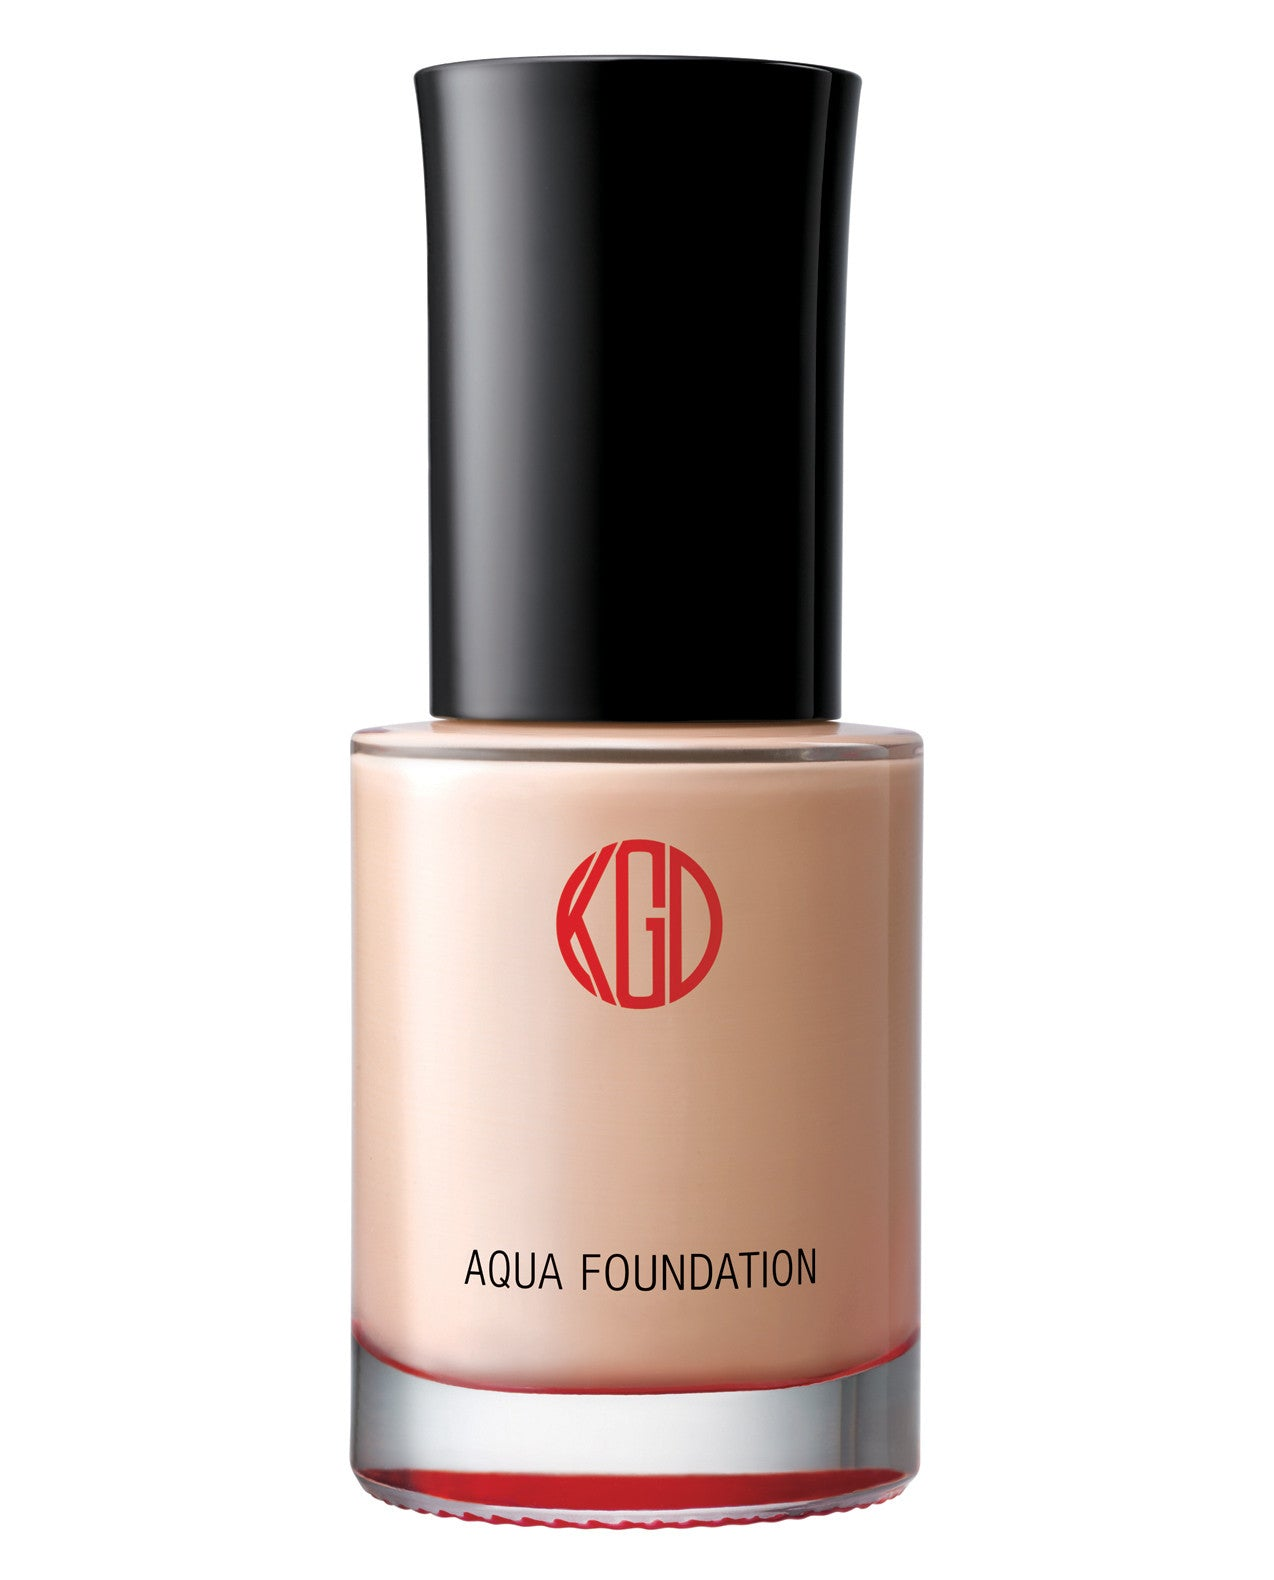 Designed to give skin the same youthful glow you experience right after a facial, Aqua Foundation's long-wearing liquid formula instantly illuminates dull skin.